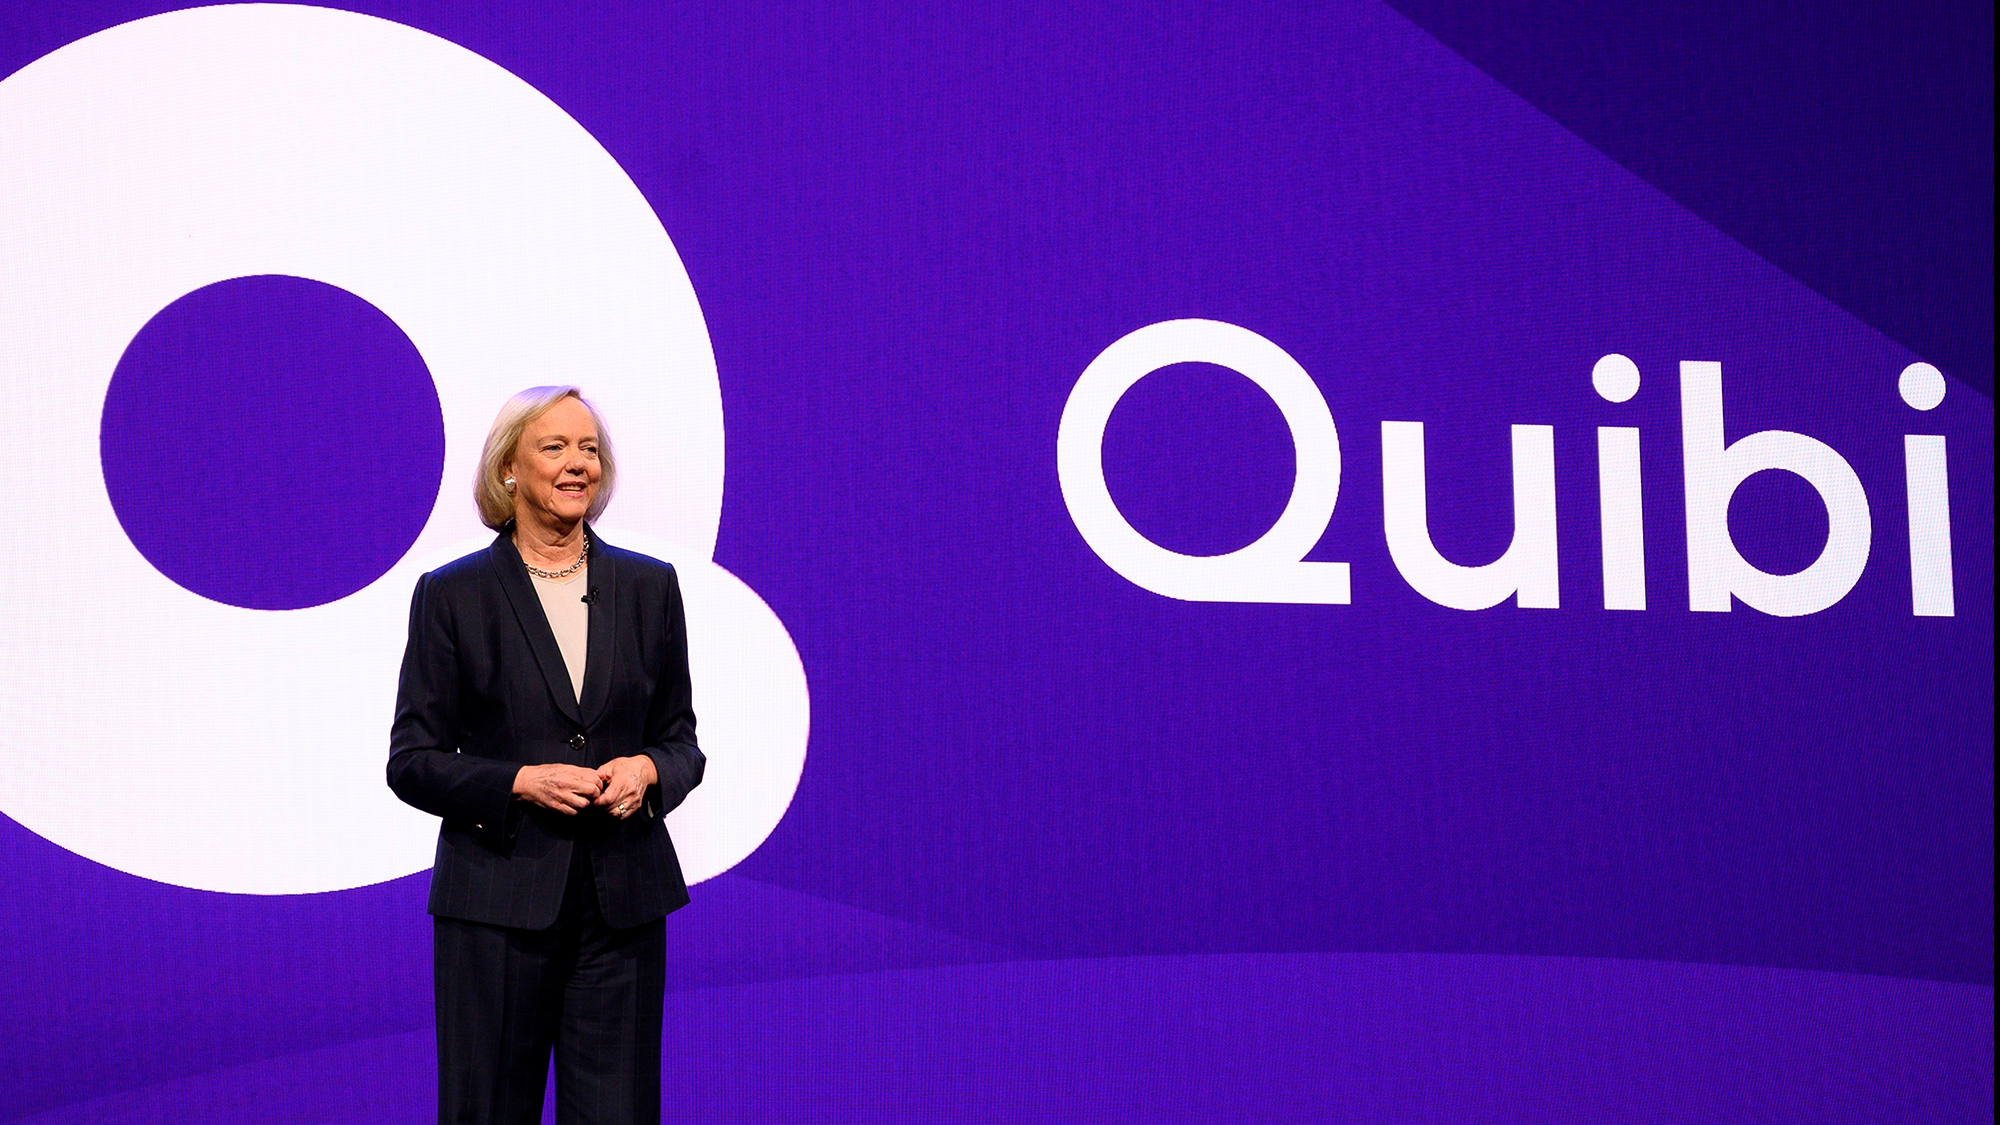 Abysmally few people are subscribing to Quibi, analytics firm says